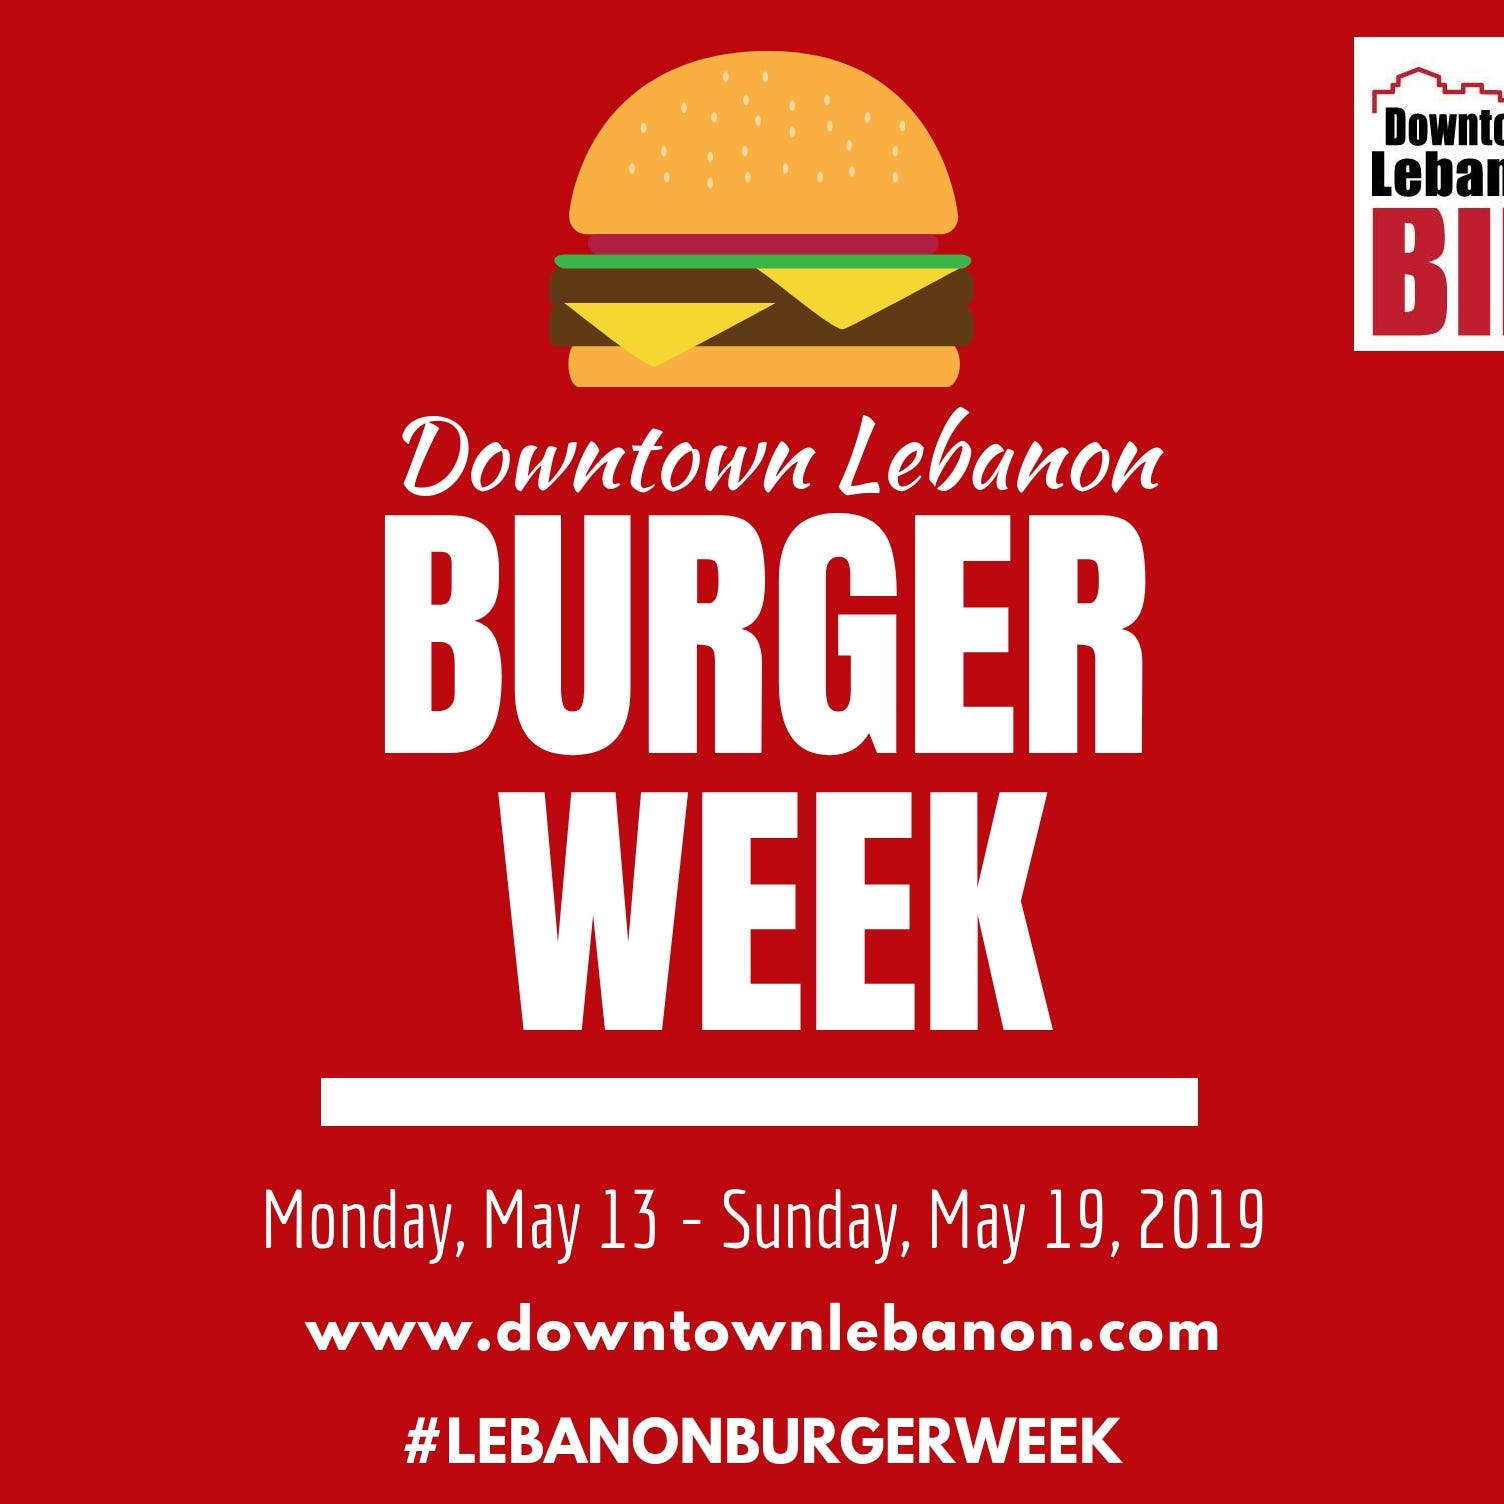 See what Lebanon eateries are cooking up for 2019 Burger Week